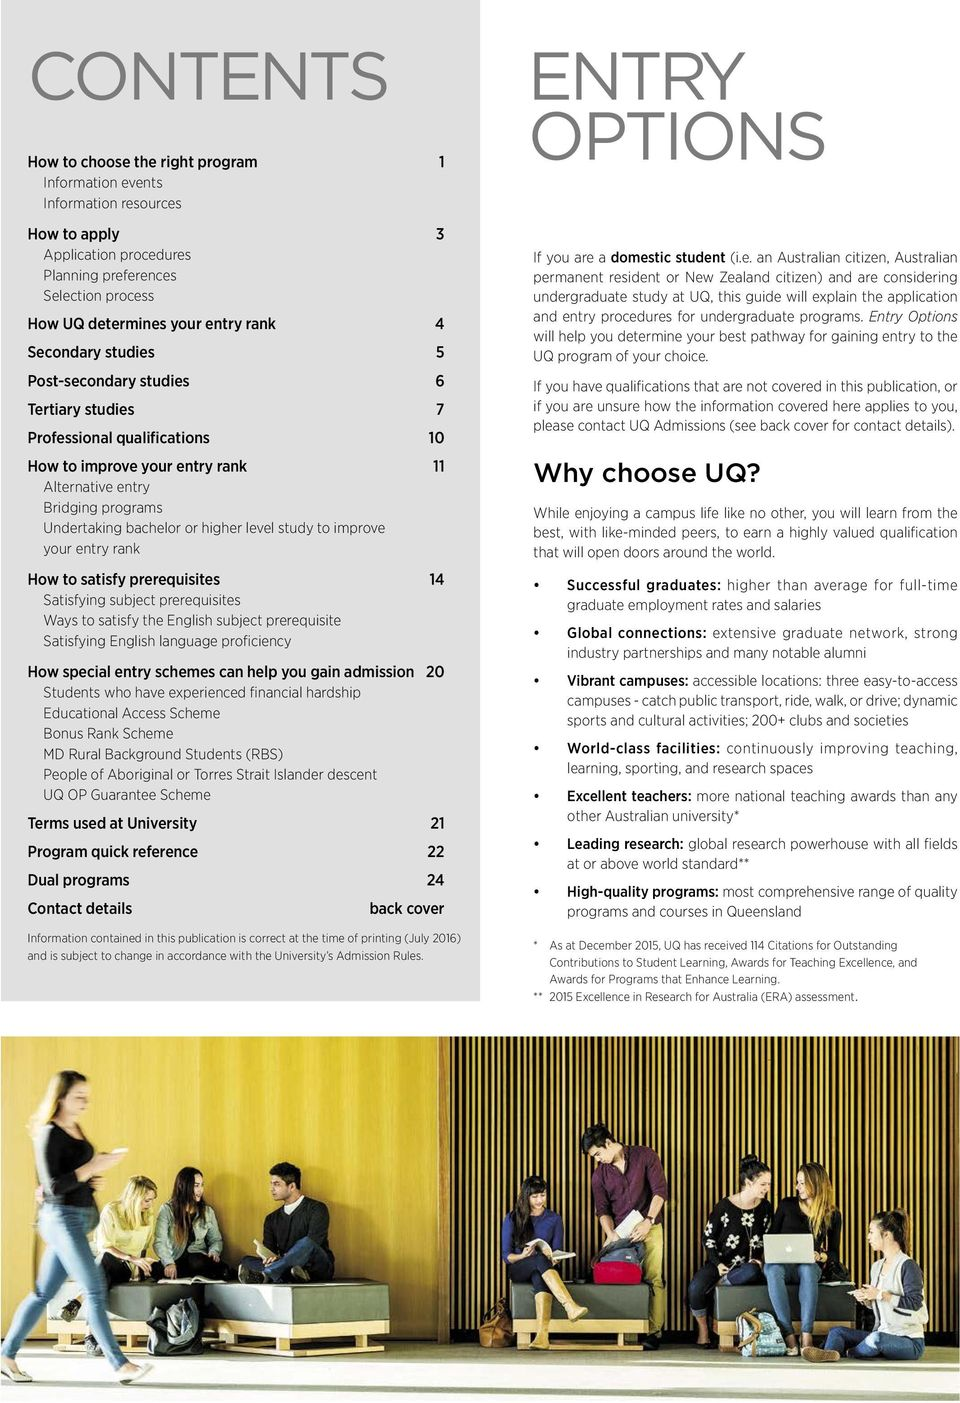 GUIDE TO UNDERGRADUATE ADMISSION AT UQ FOR DOMESTIC STUDENTS ENTRY